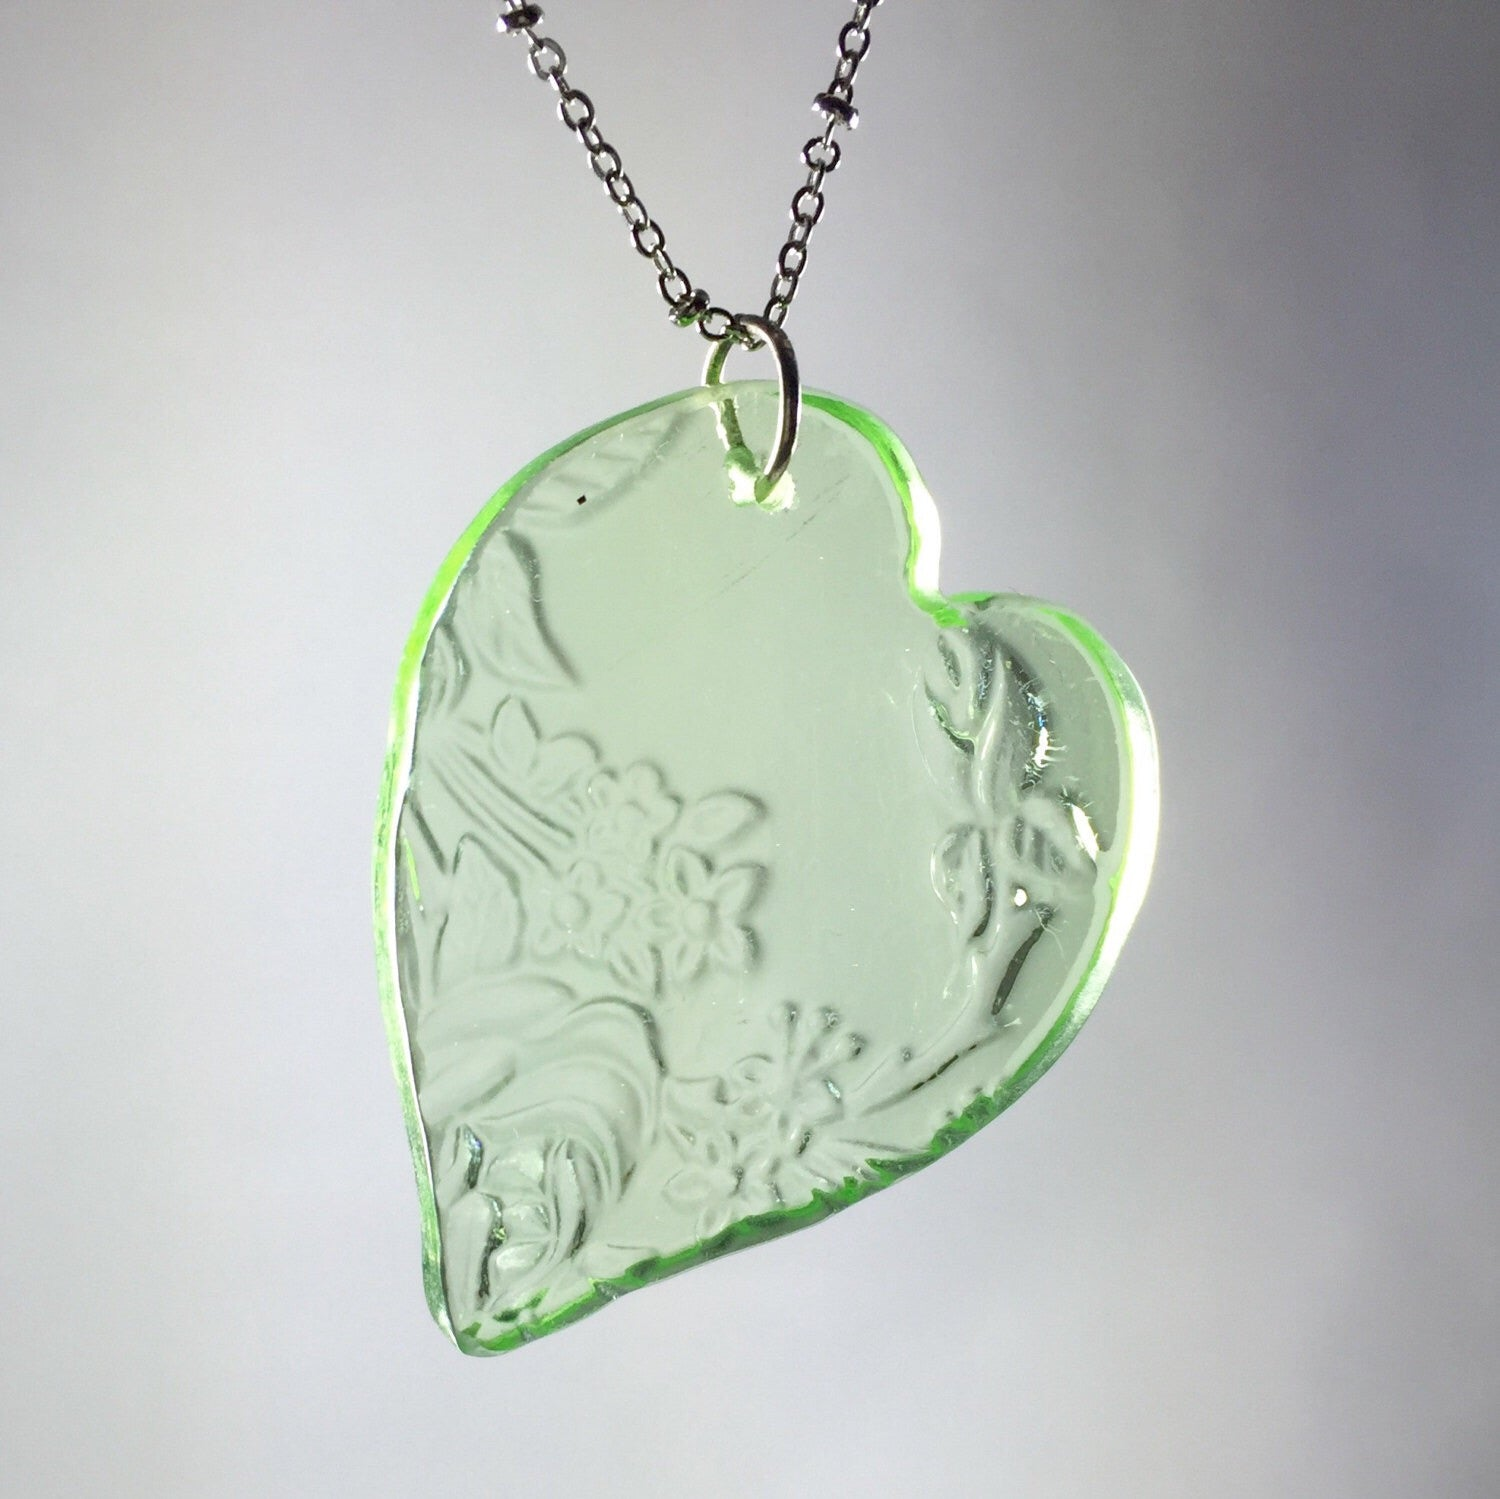 Broken china jewelry - glass heart necklace